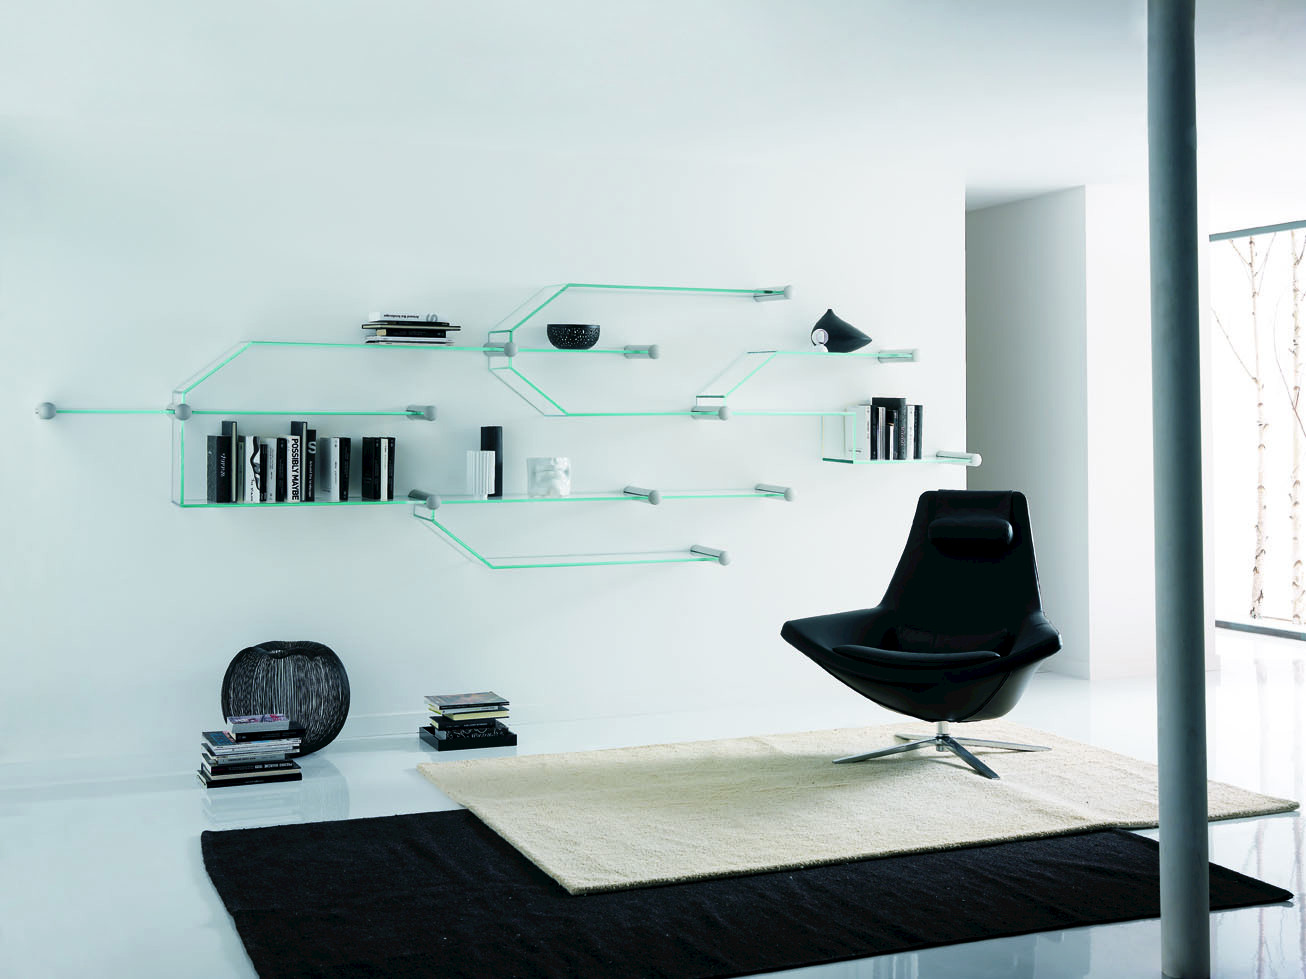 Wandregal design glas  Bücherregal / Wandregal aus Glas TRANSISTOR By Tonelli Design